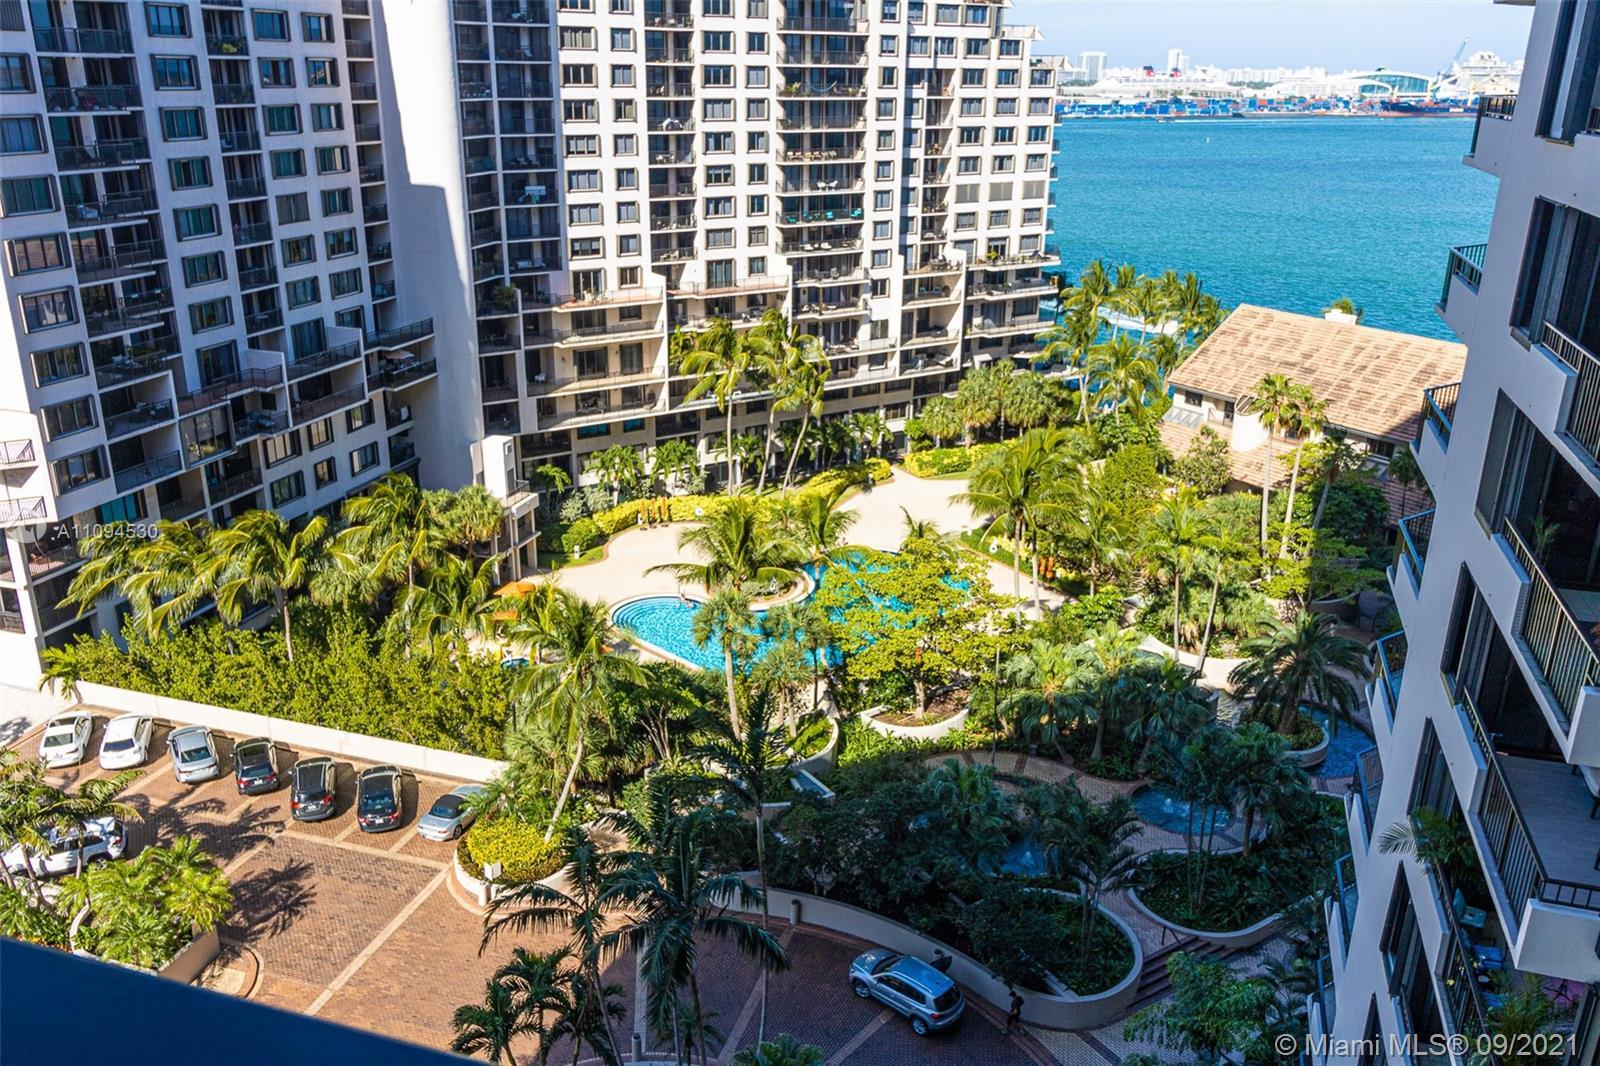 Located on the exclusive Brickell Key Island this spacious 2 bedrooms unit is one of the largest in